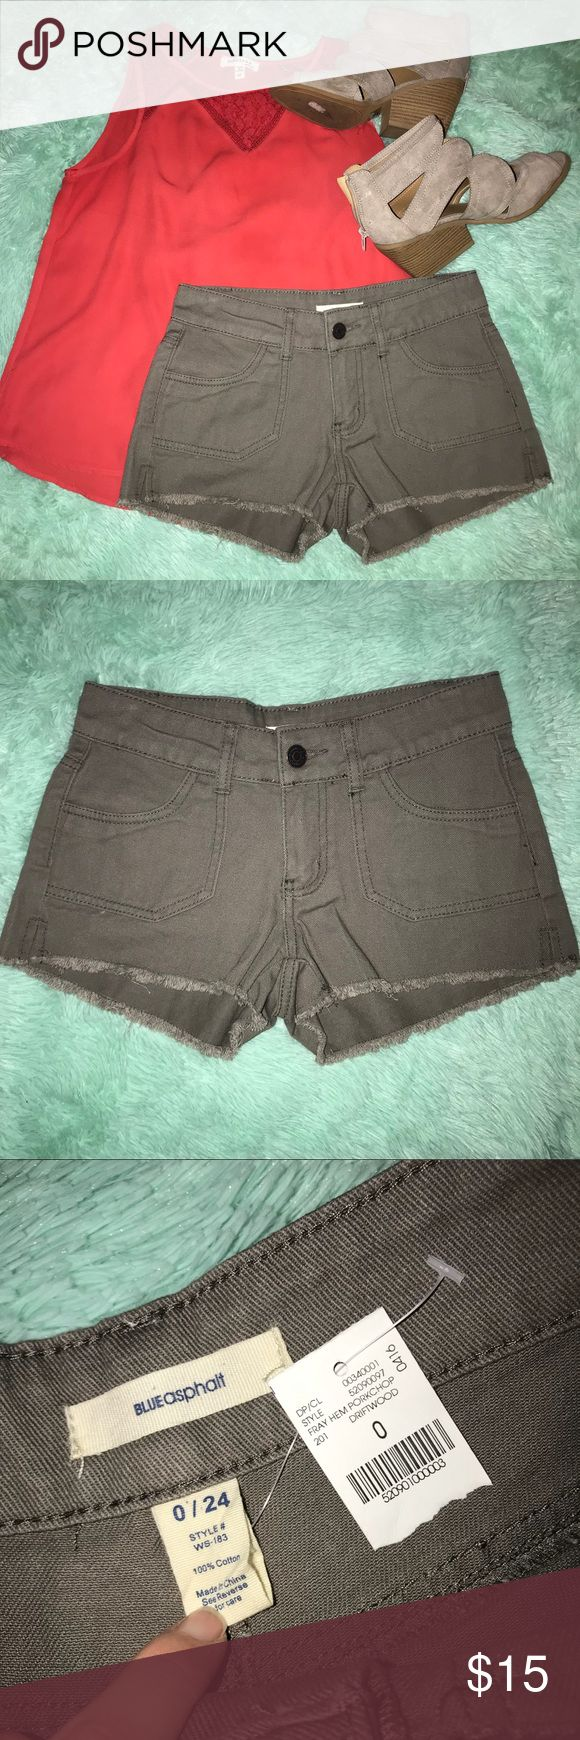 NWT mid rise shorts Blue asphalt size 8. Little fraying at the bottom. From wet seal. A gray/brown color Blue Asphalt Shorts